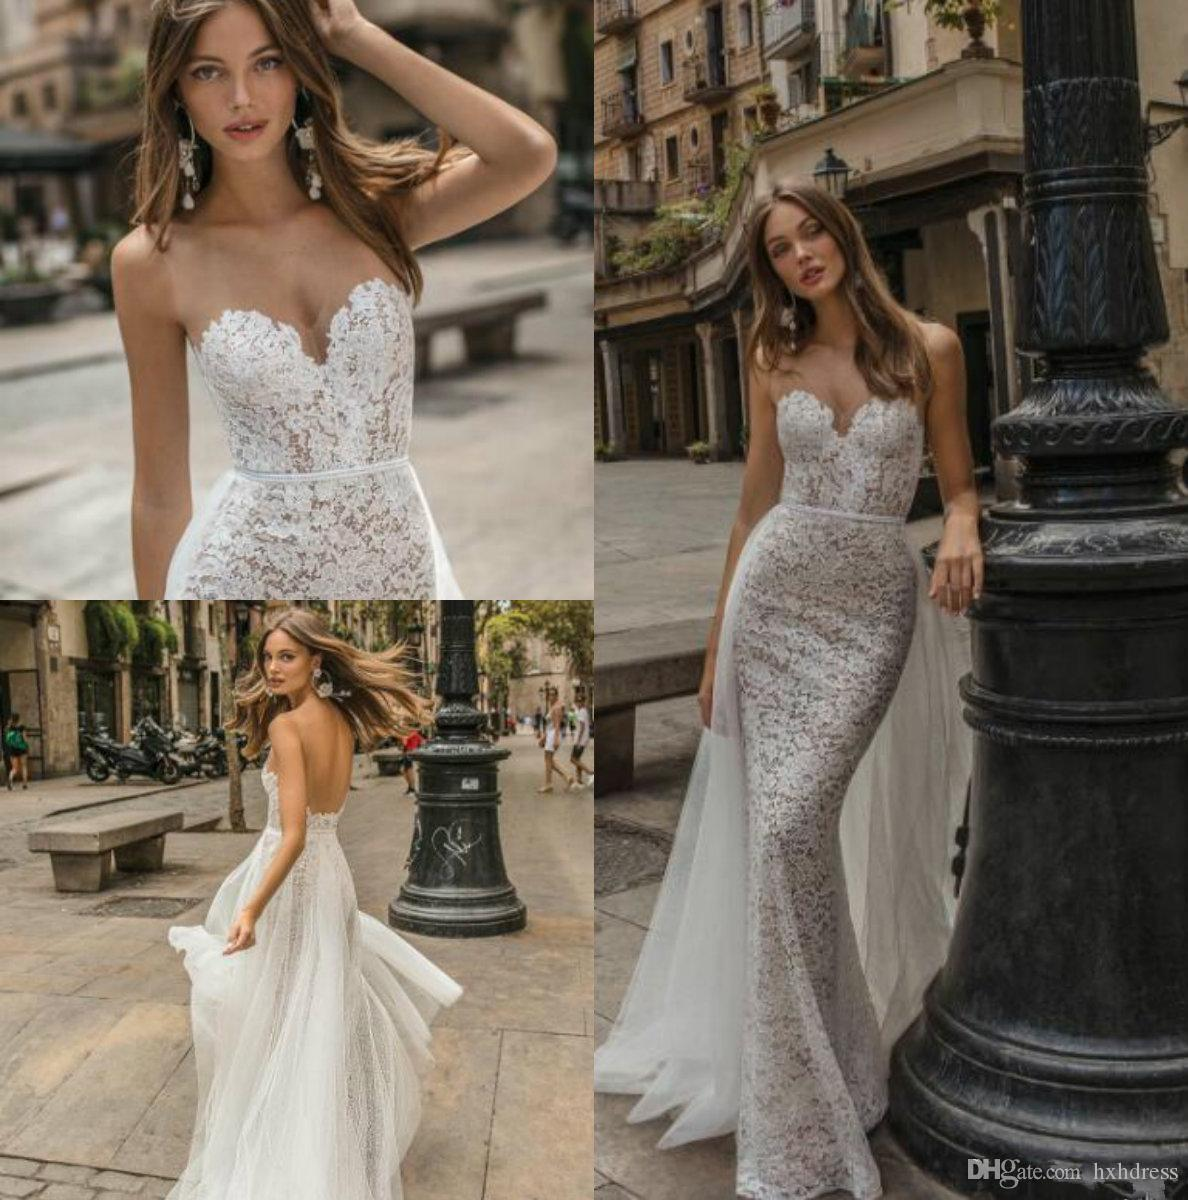 Sweetheart Neckline Lace Mermaid Wedding Dresses New 2019: 2019 New Muse By Berta Mermaid Wedding Dresses Sheer